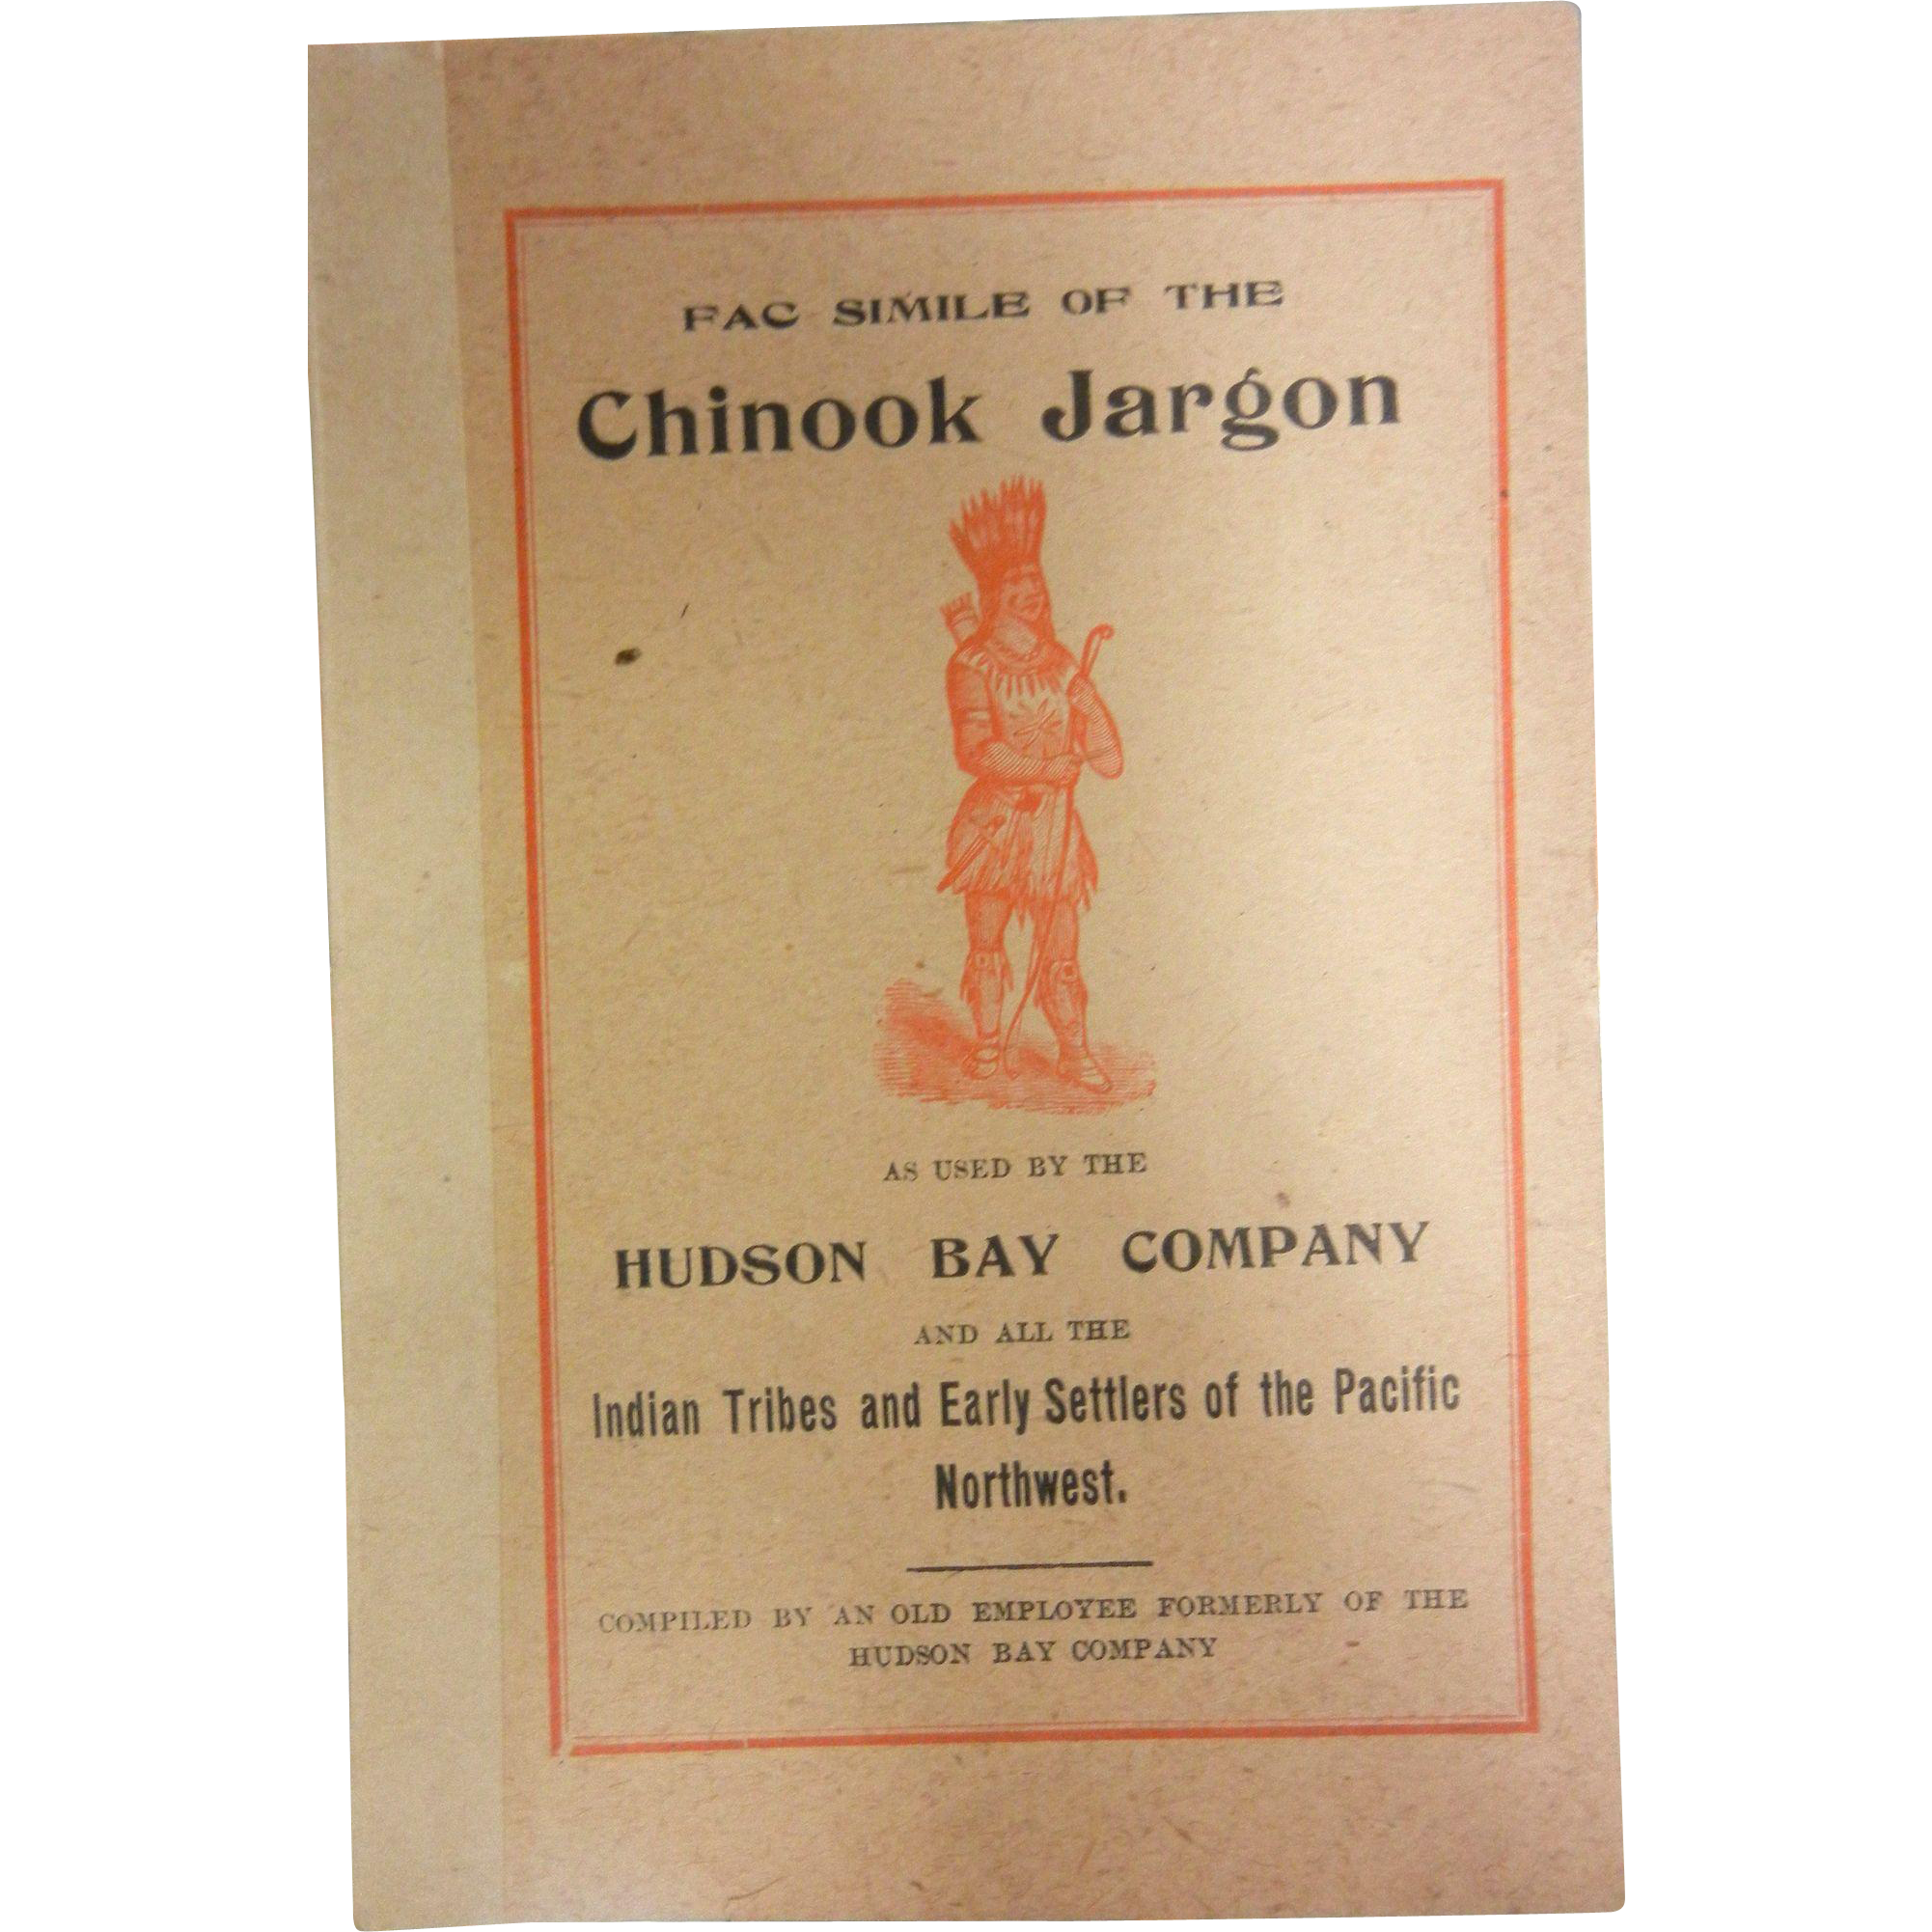 Vintage Paper Booklet - Fac Simile of the Chinook Jargon by the Hudson Bay Company